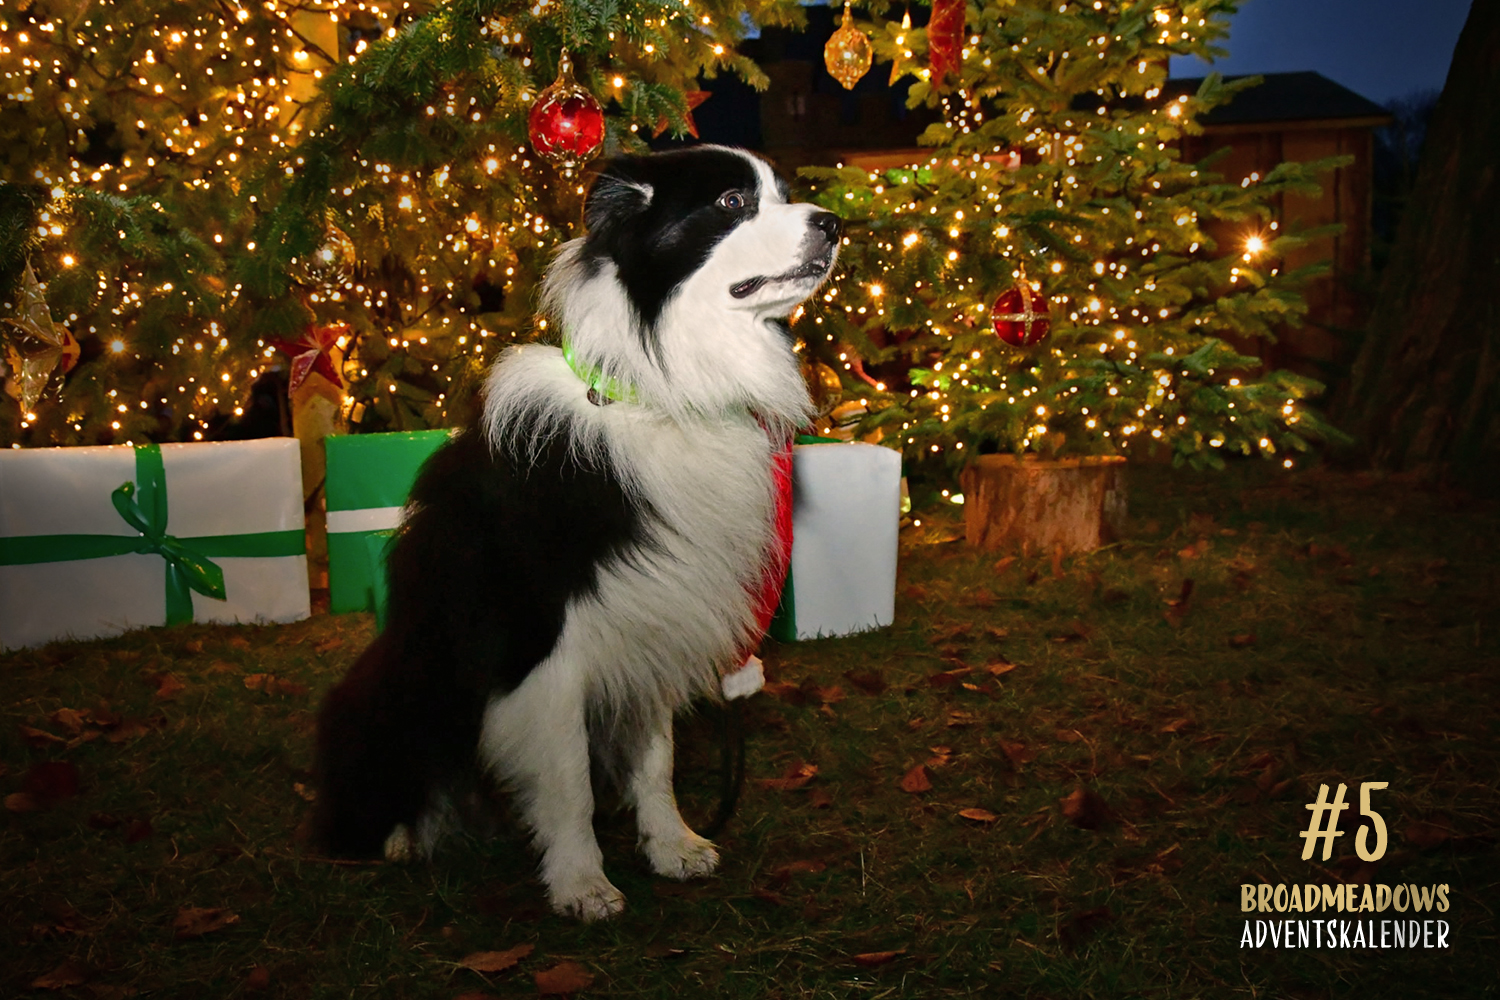 Broadmeadows Border Collies Adventskalender – No. 5: »Joey« (Broadmeadows Black Diamond)